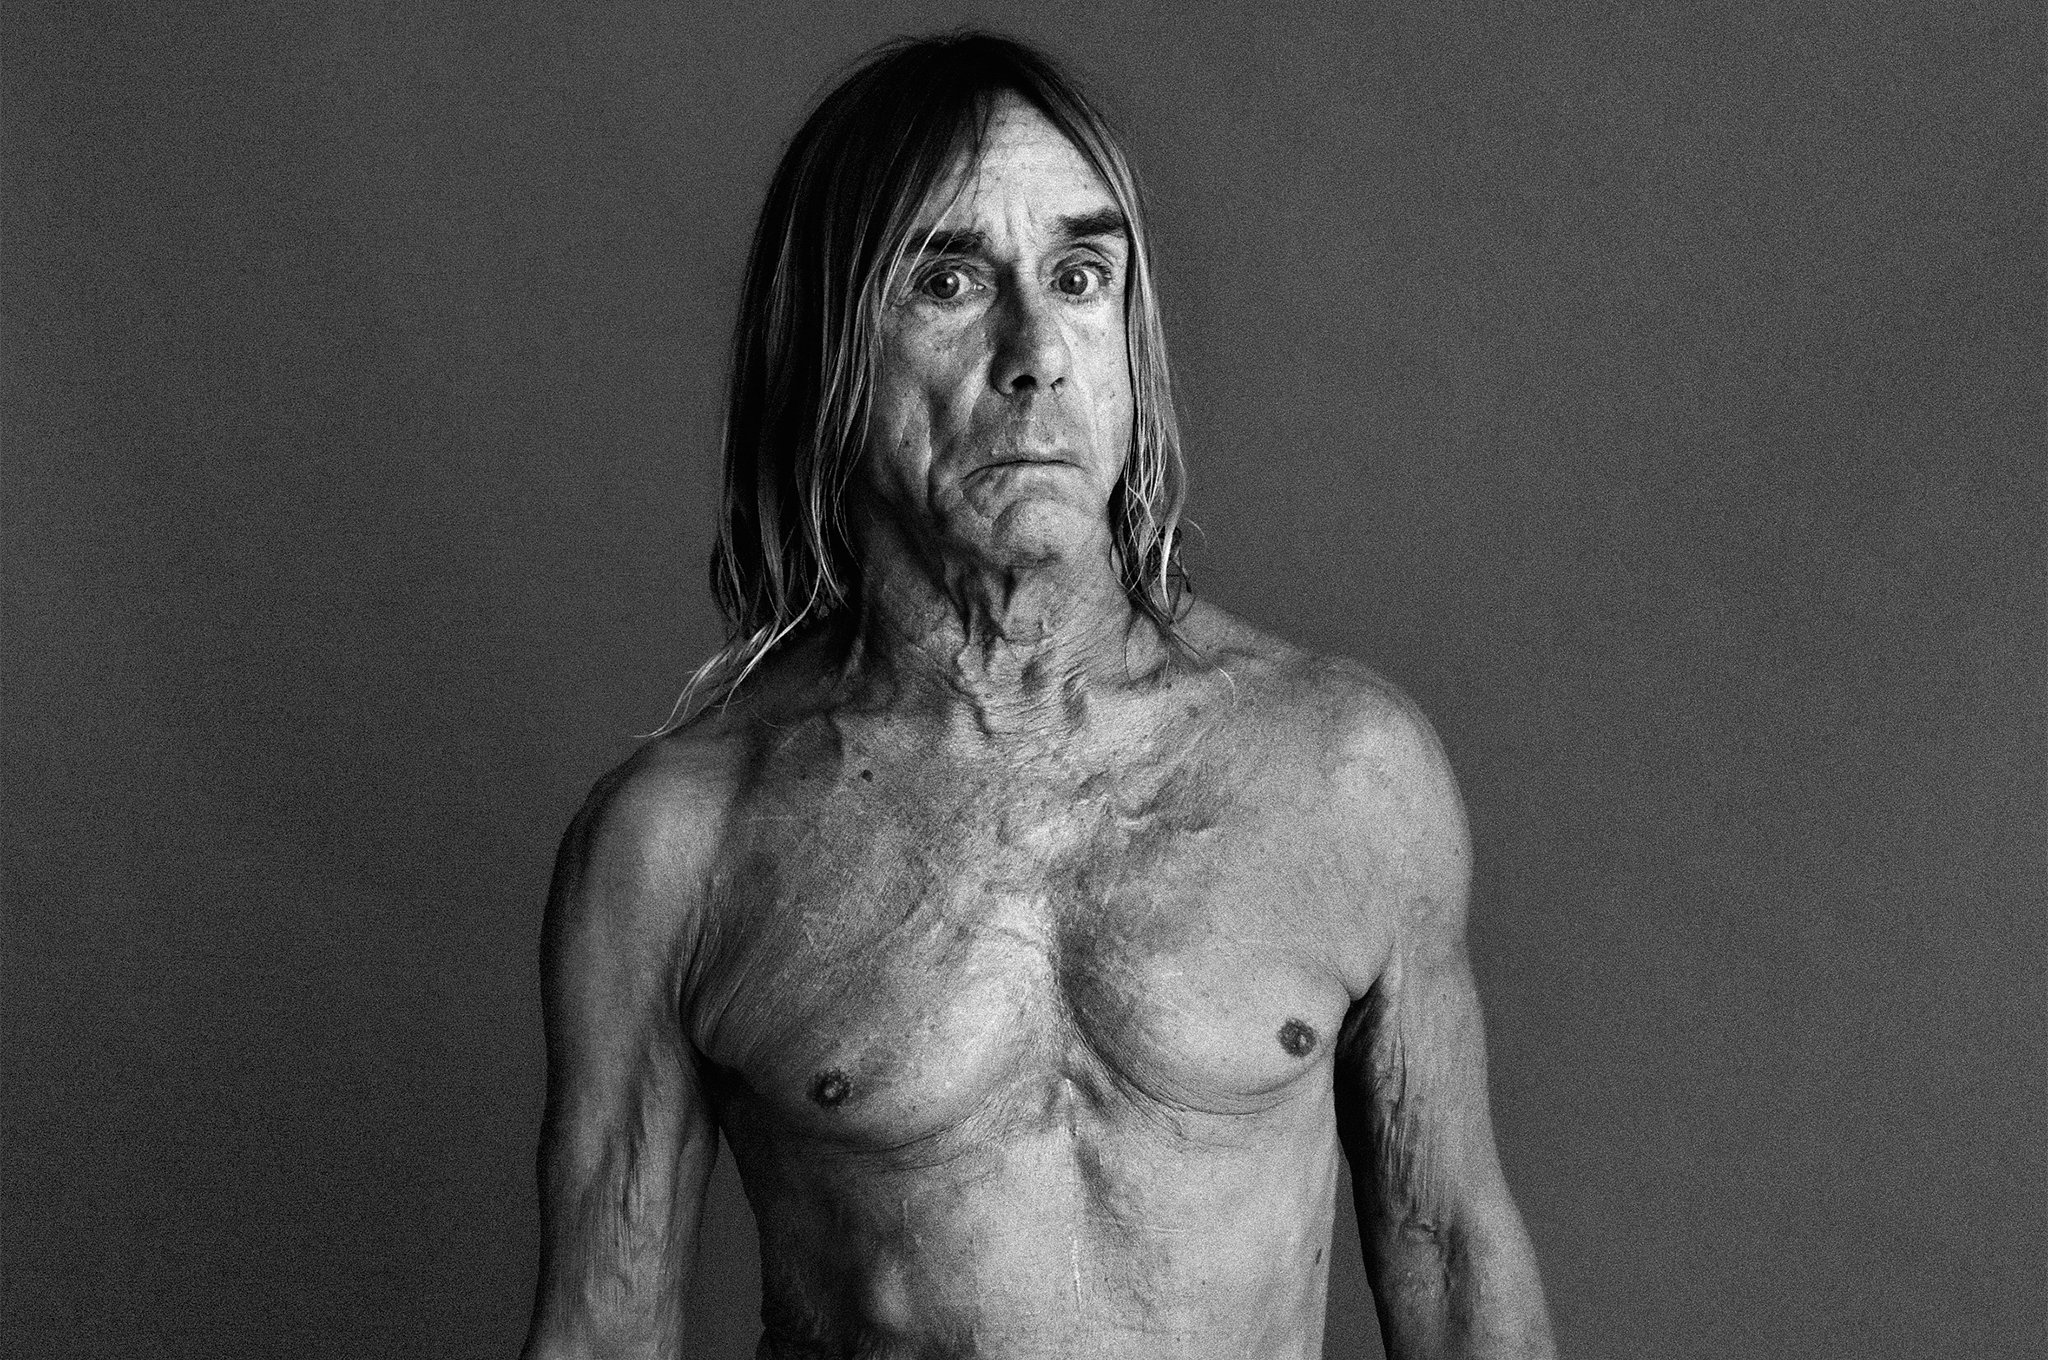 Iggy-Pop-promo-photo-02